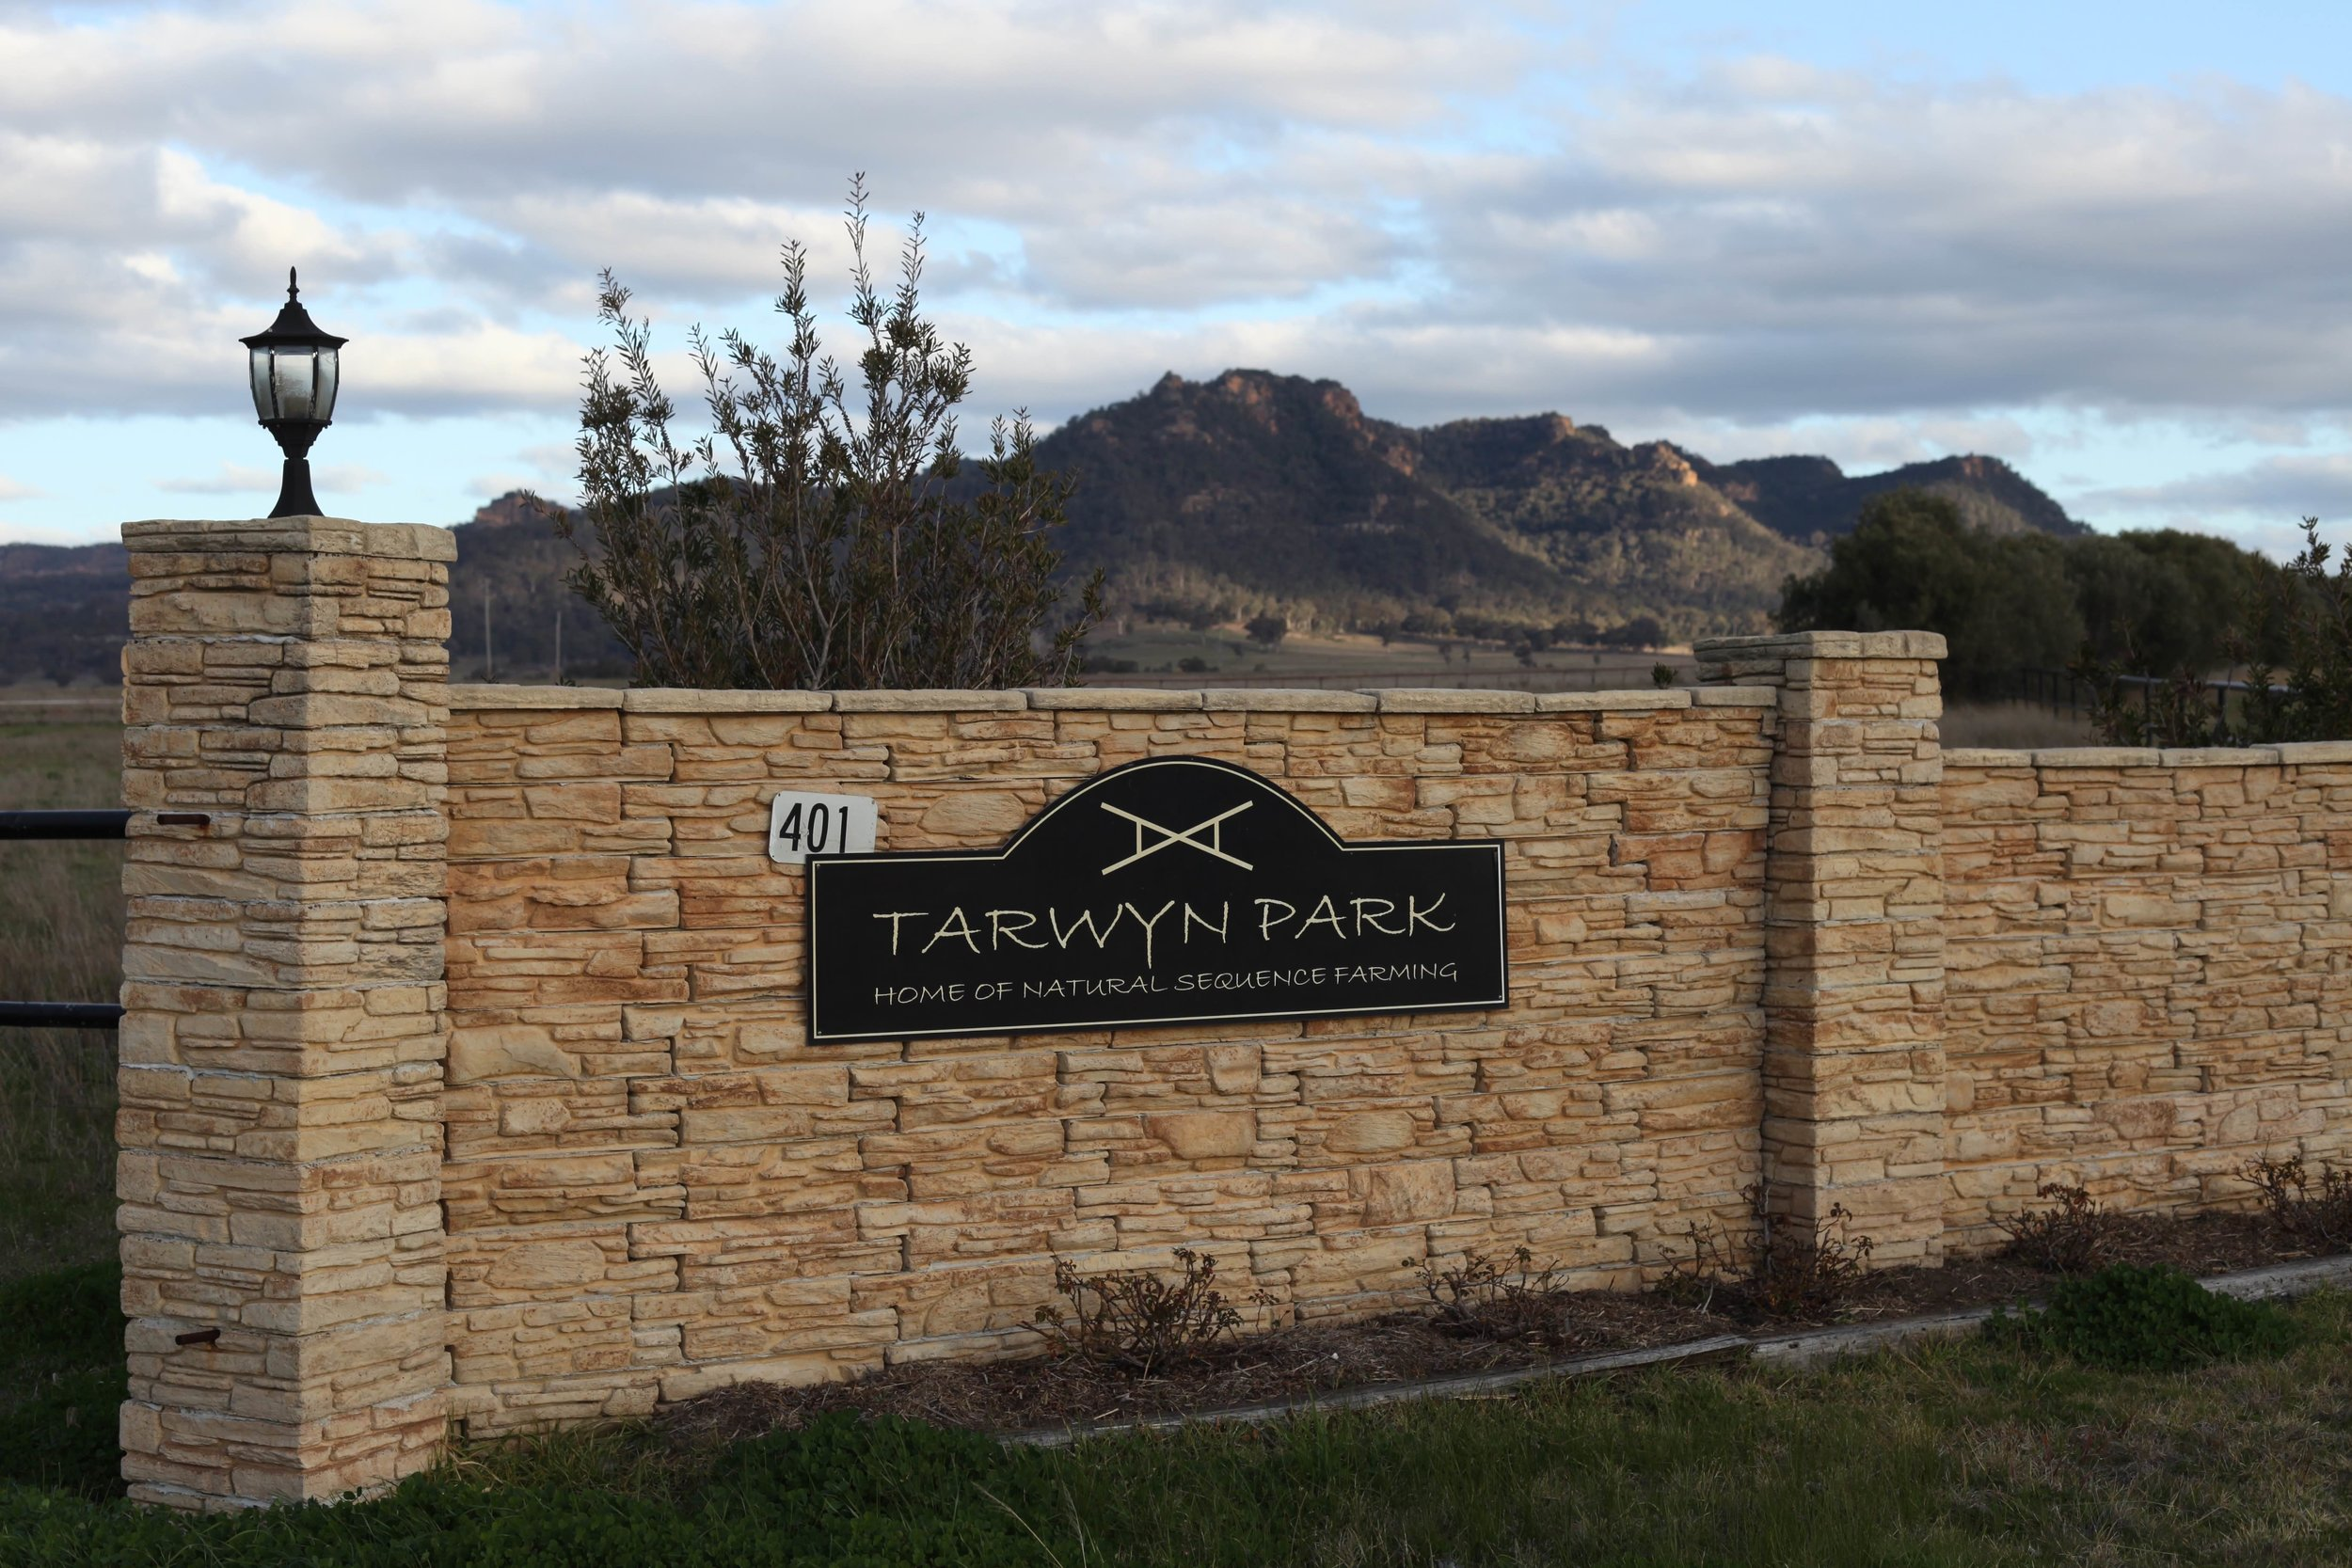 Tarwyn Park in Bylong, home of Peter Andrews' Natural Sequence Farming.